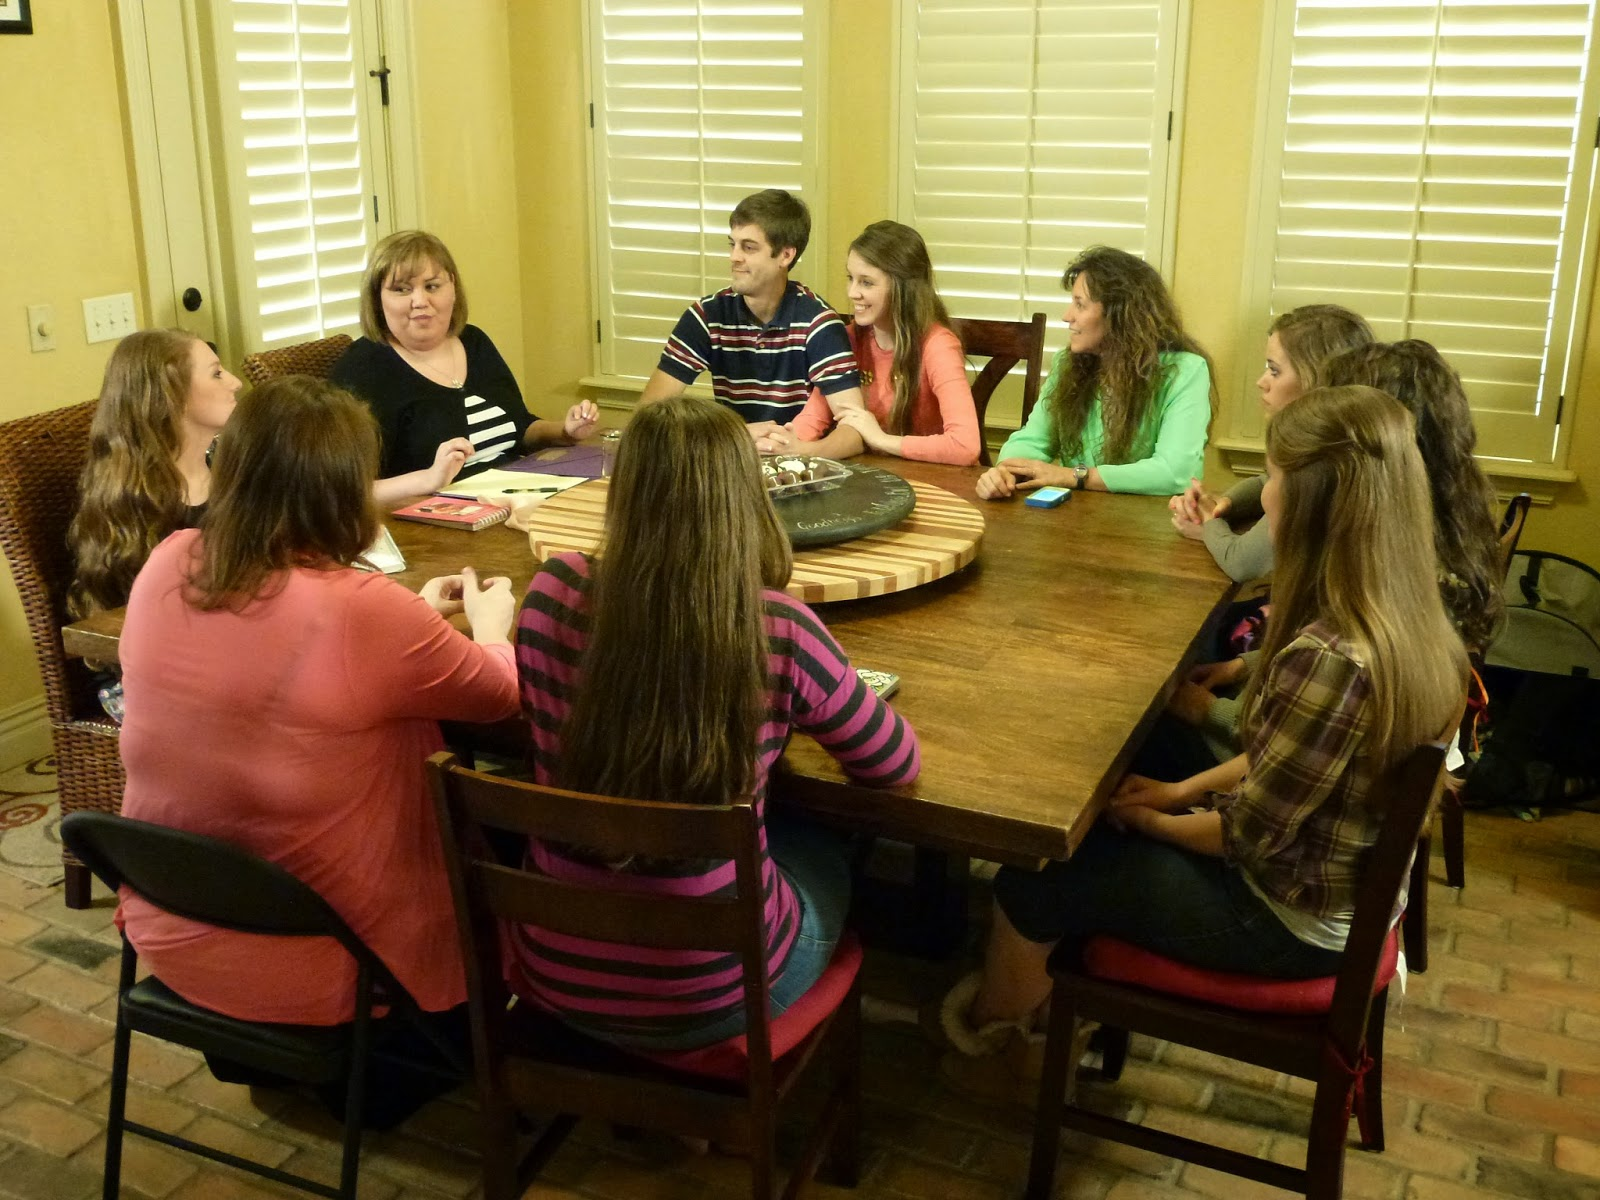 Duggar Dillard wedding planning